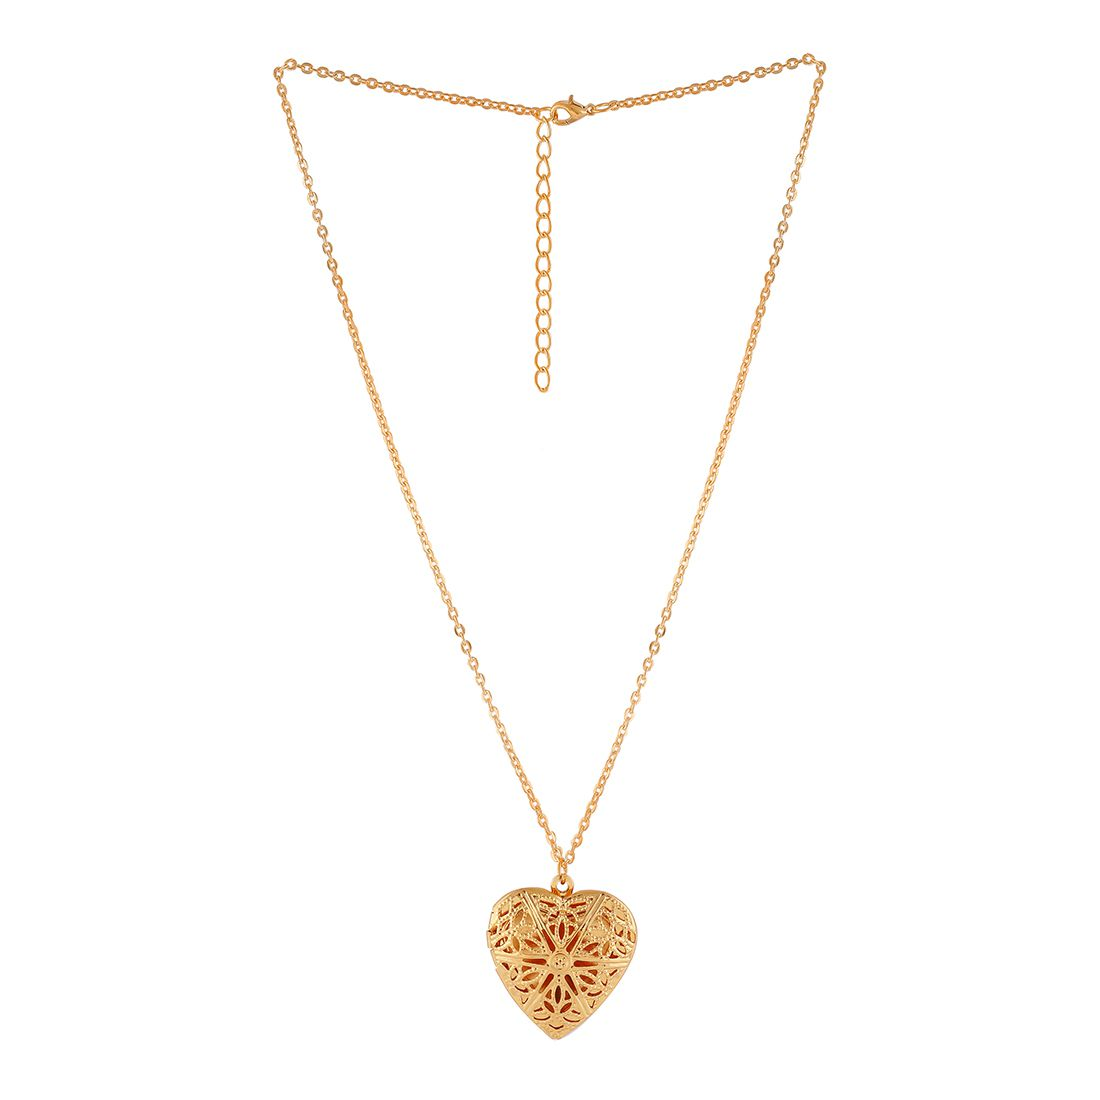 Golden Designer Heart Pendant Necklace